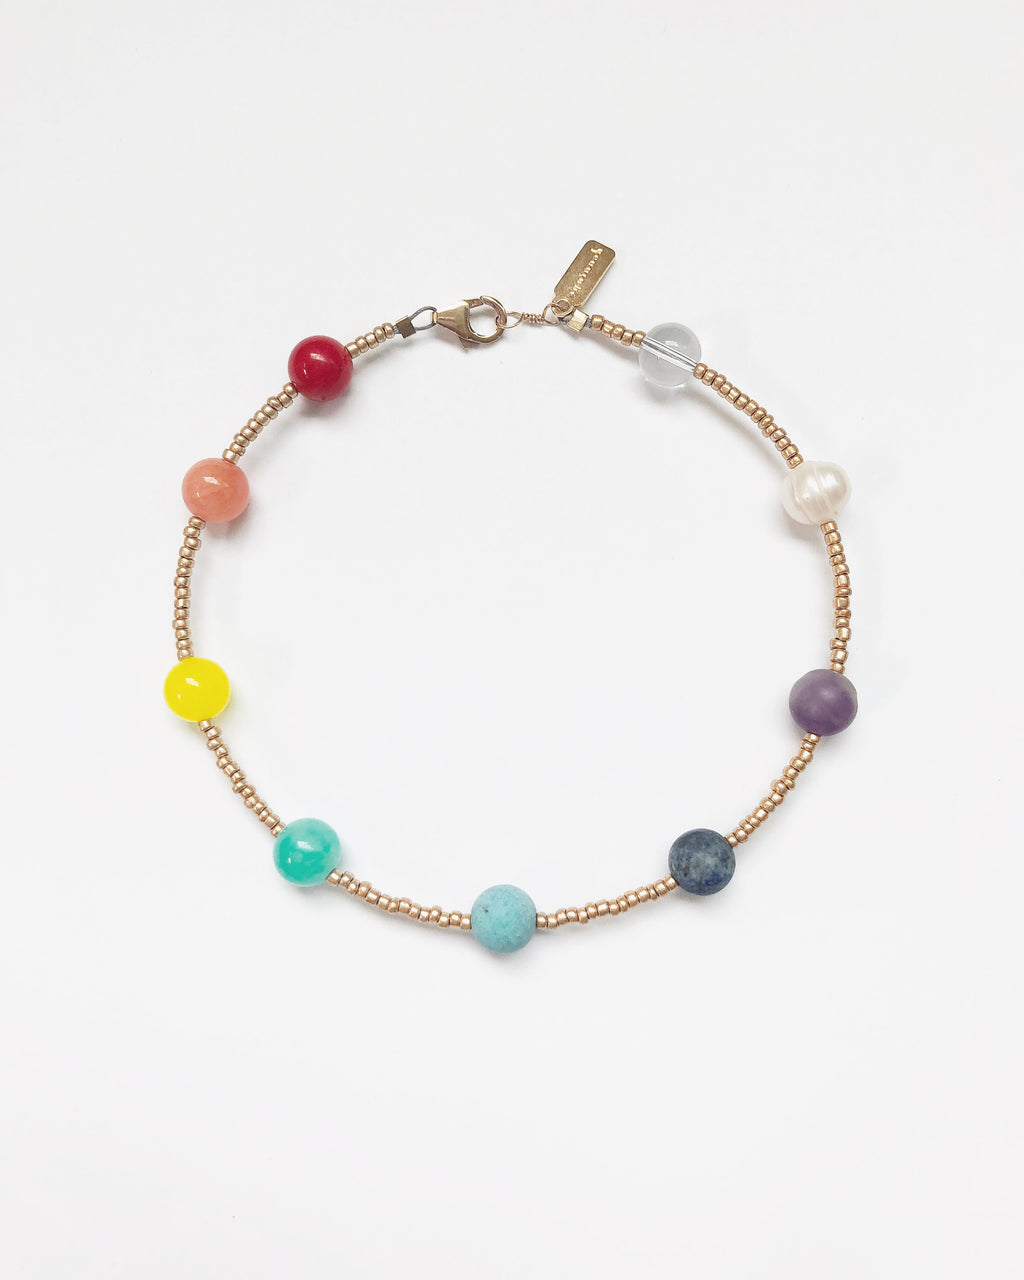 Aquinnah Rainbow Chakra Anklet in Gold